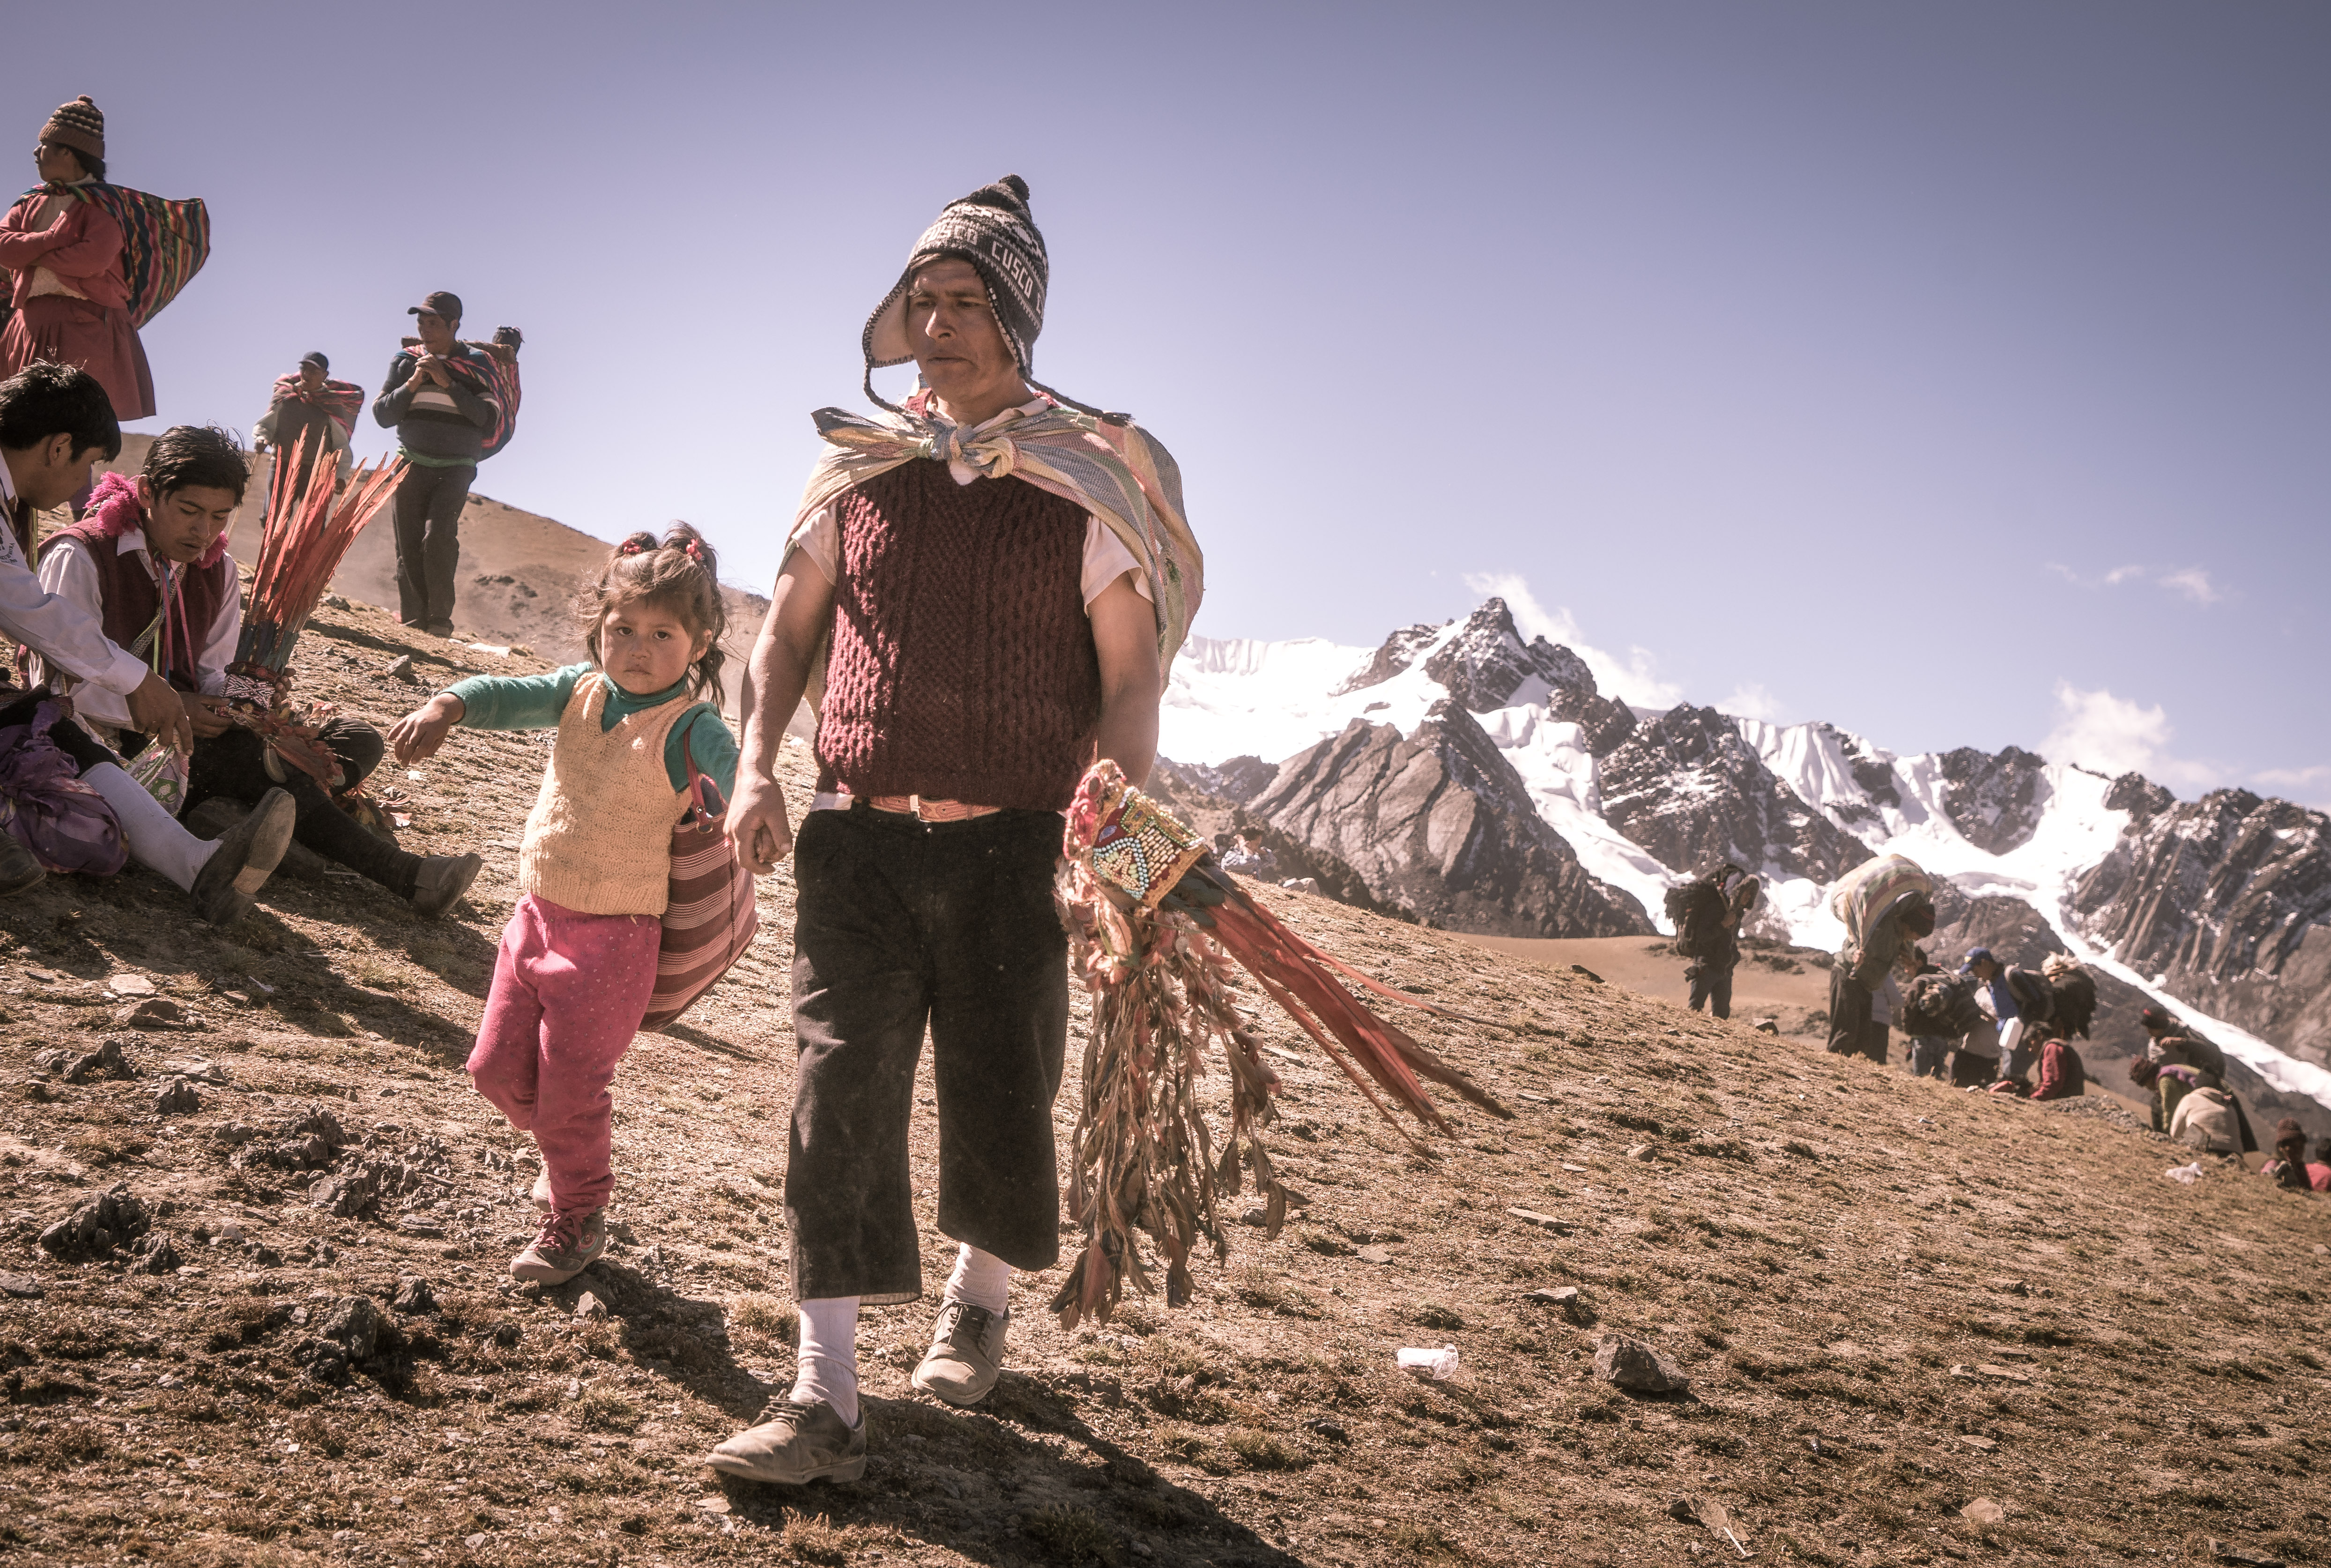 An andean man and his doughter walking up the mountains (Photo by Walter Coraza Morveli)